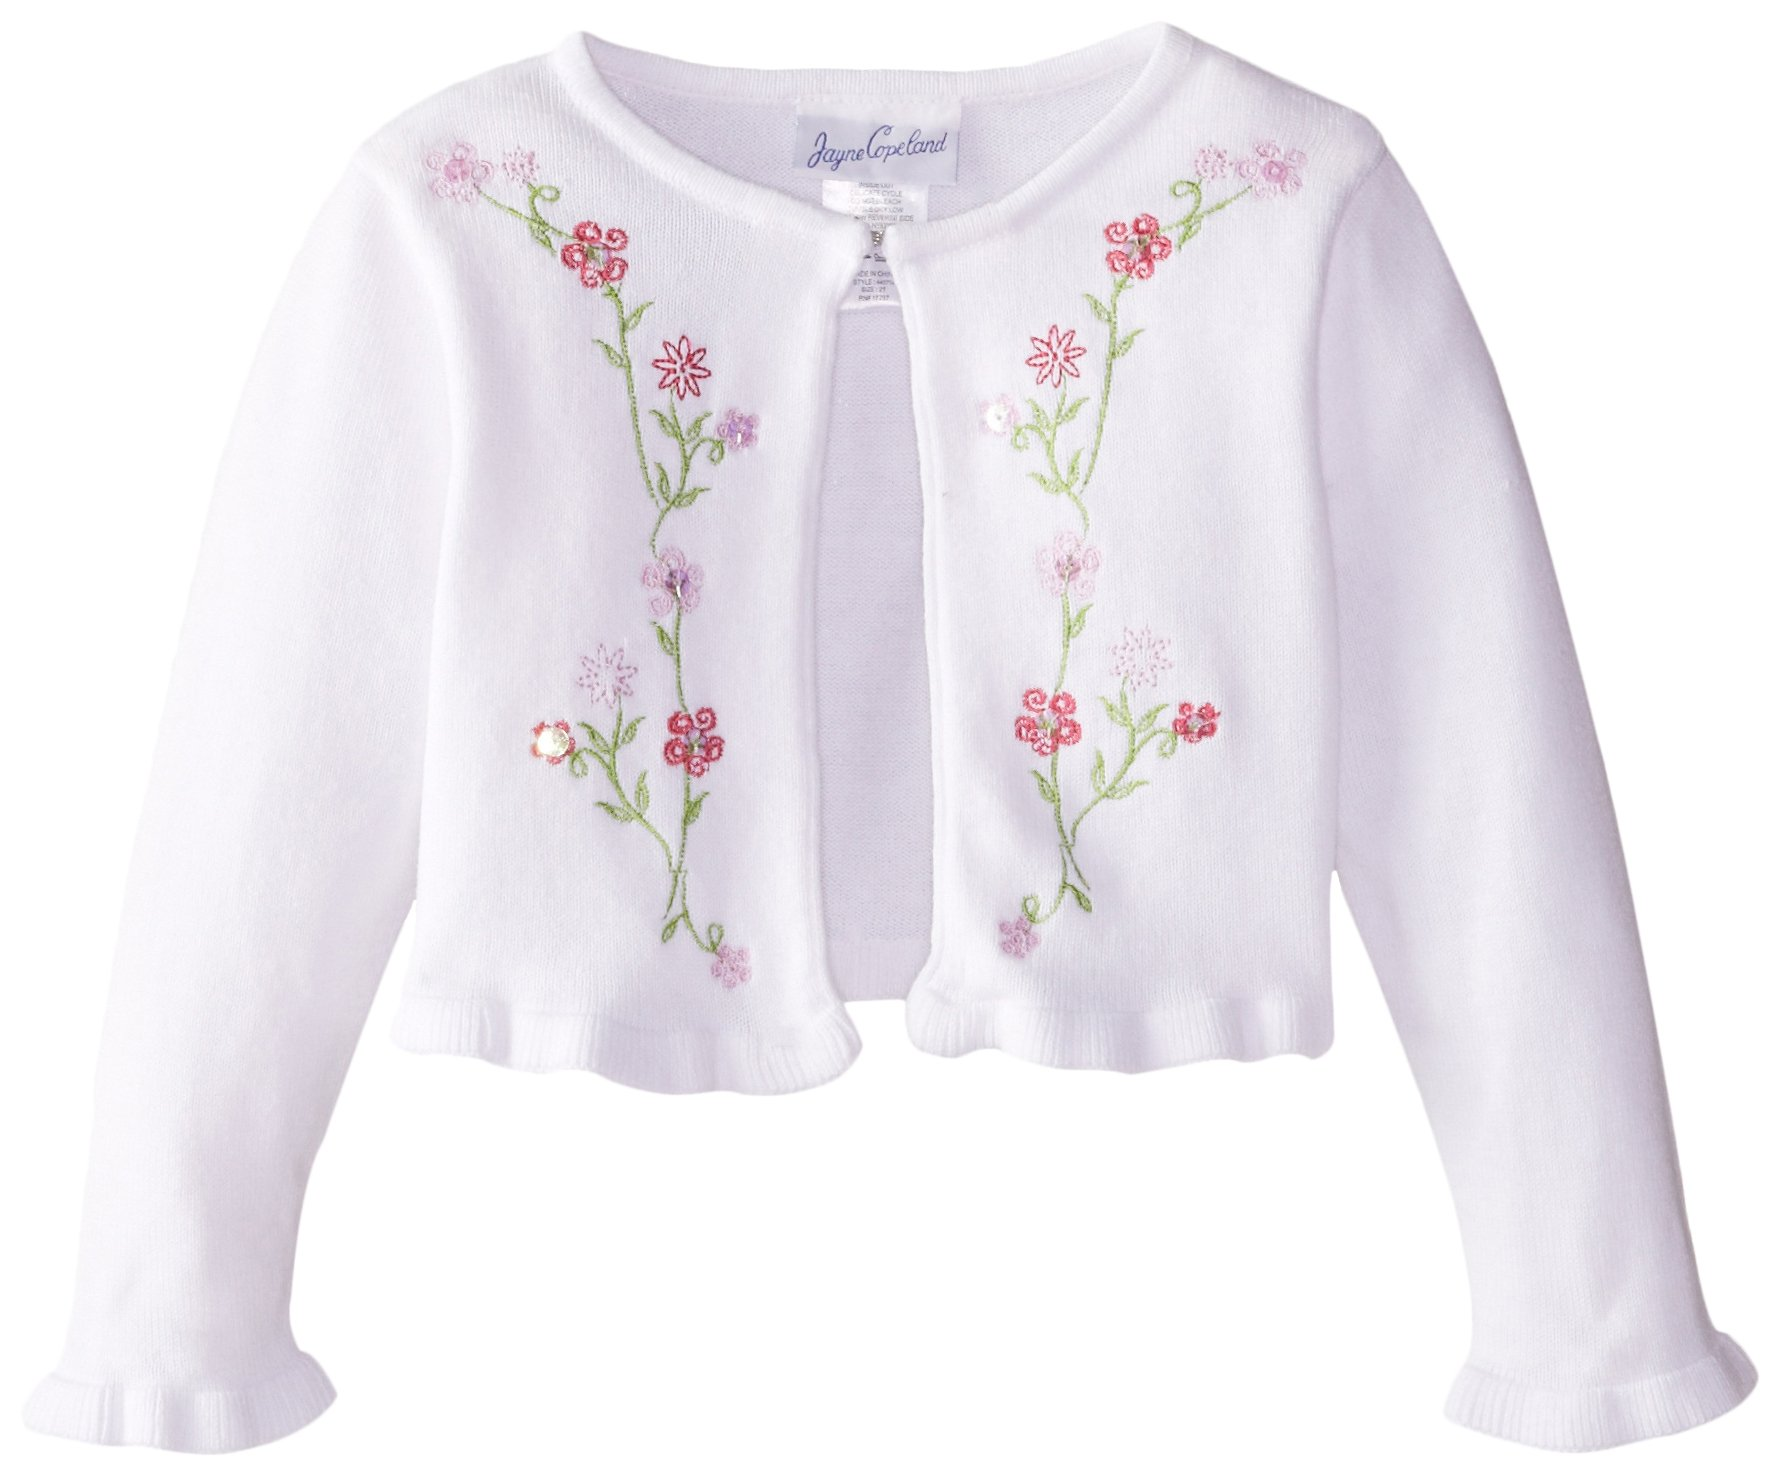 Jayne Copeland Little Girls' Sweater with Floral Embroidery, White, 2T